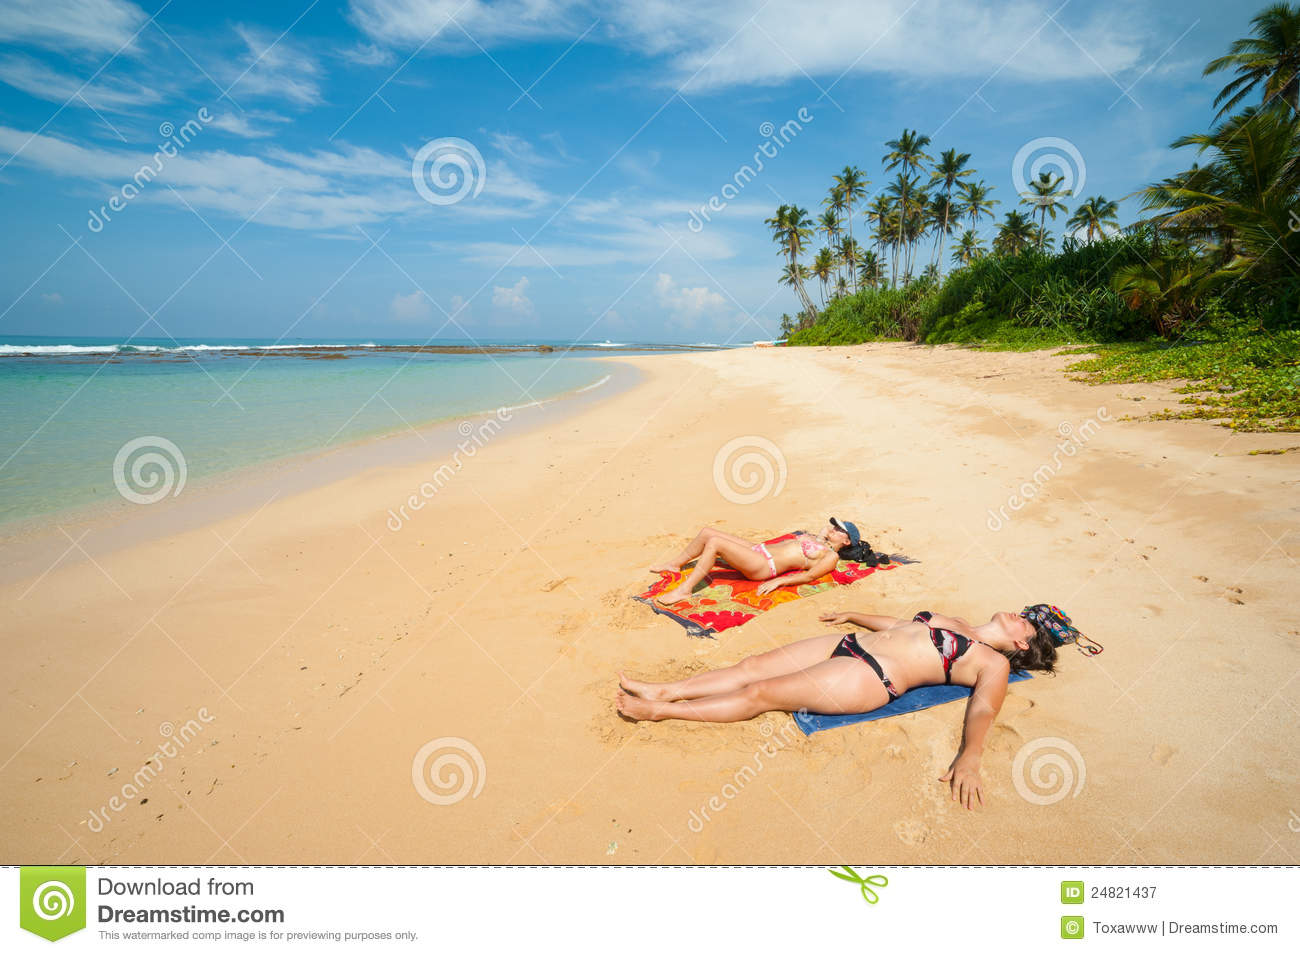 Two Women Sunbathing Royalty Free Stock Photography   Image 24821437